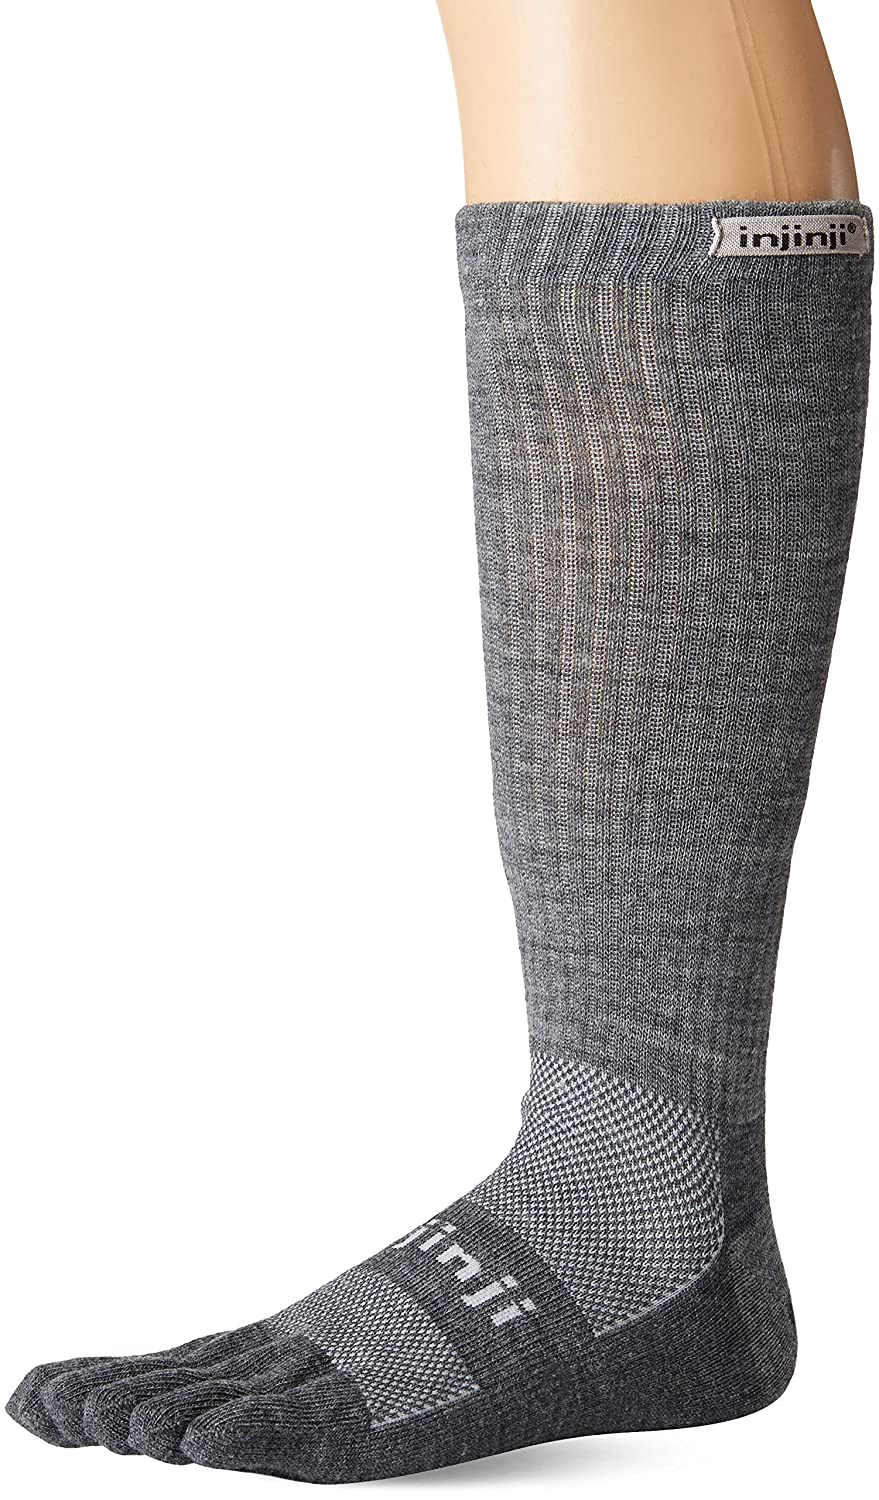 Injinji 2.0 Outdoor Original Weight Crew Nuwwol Socks, Charcoal/Black, Large 223270CHL